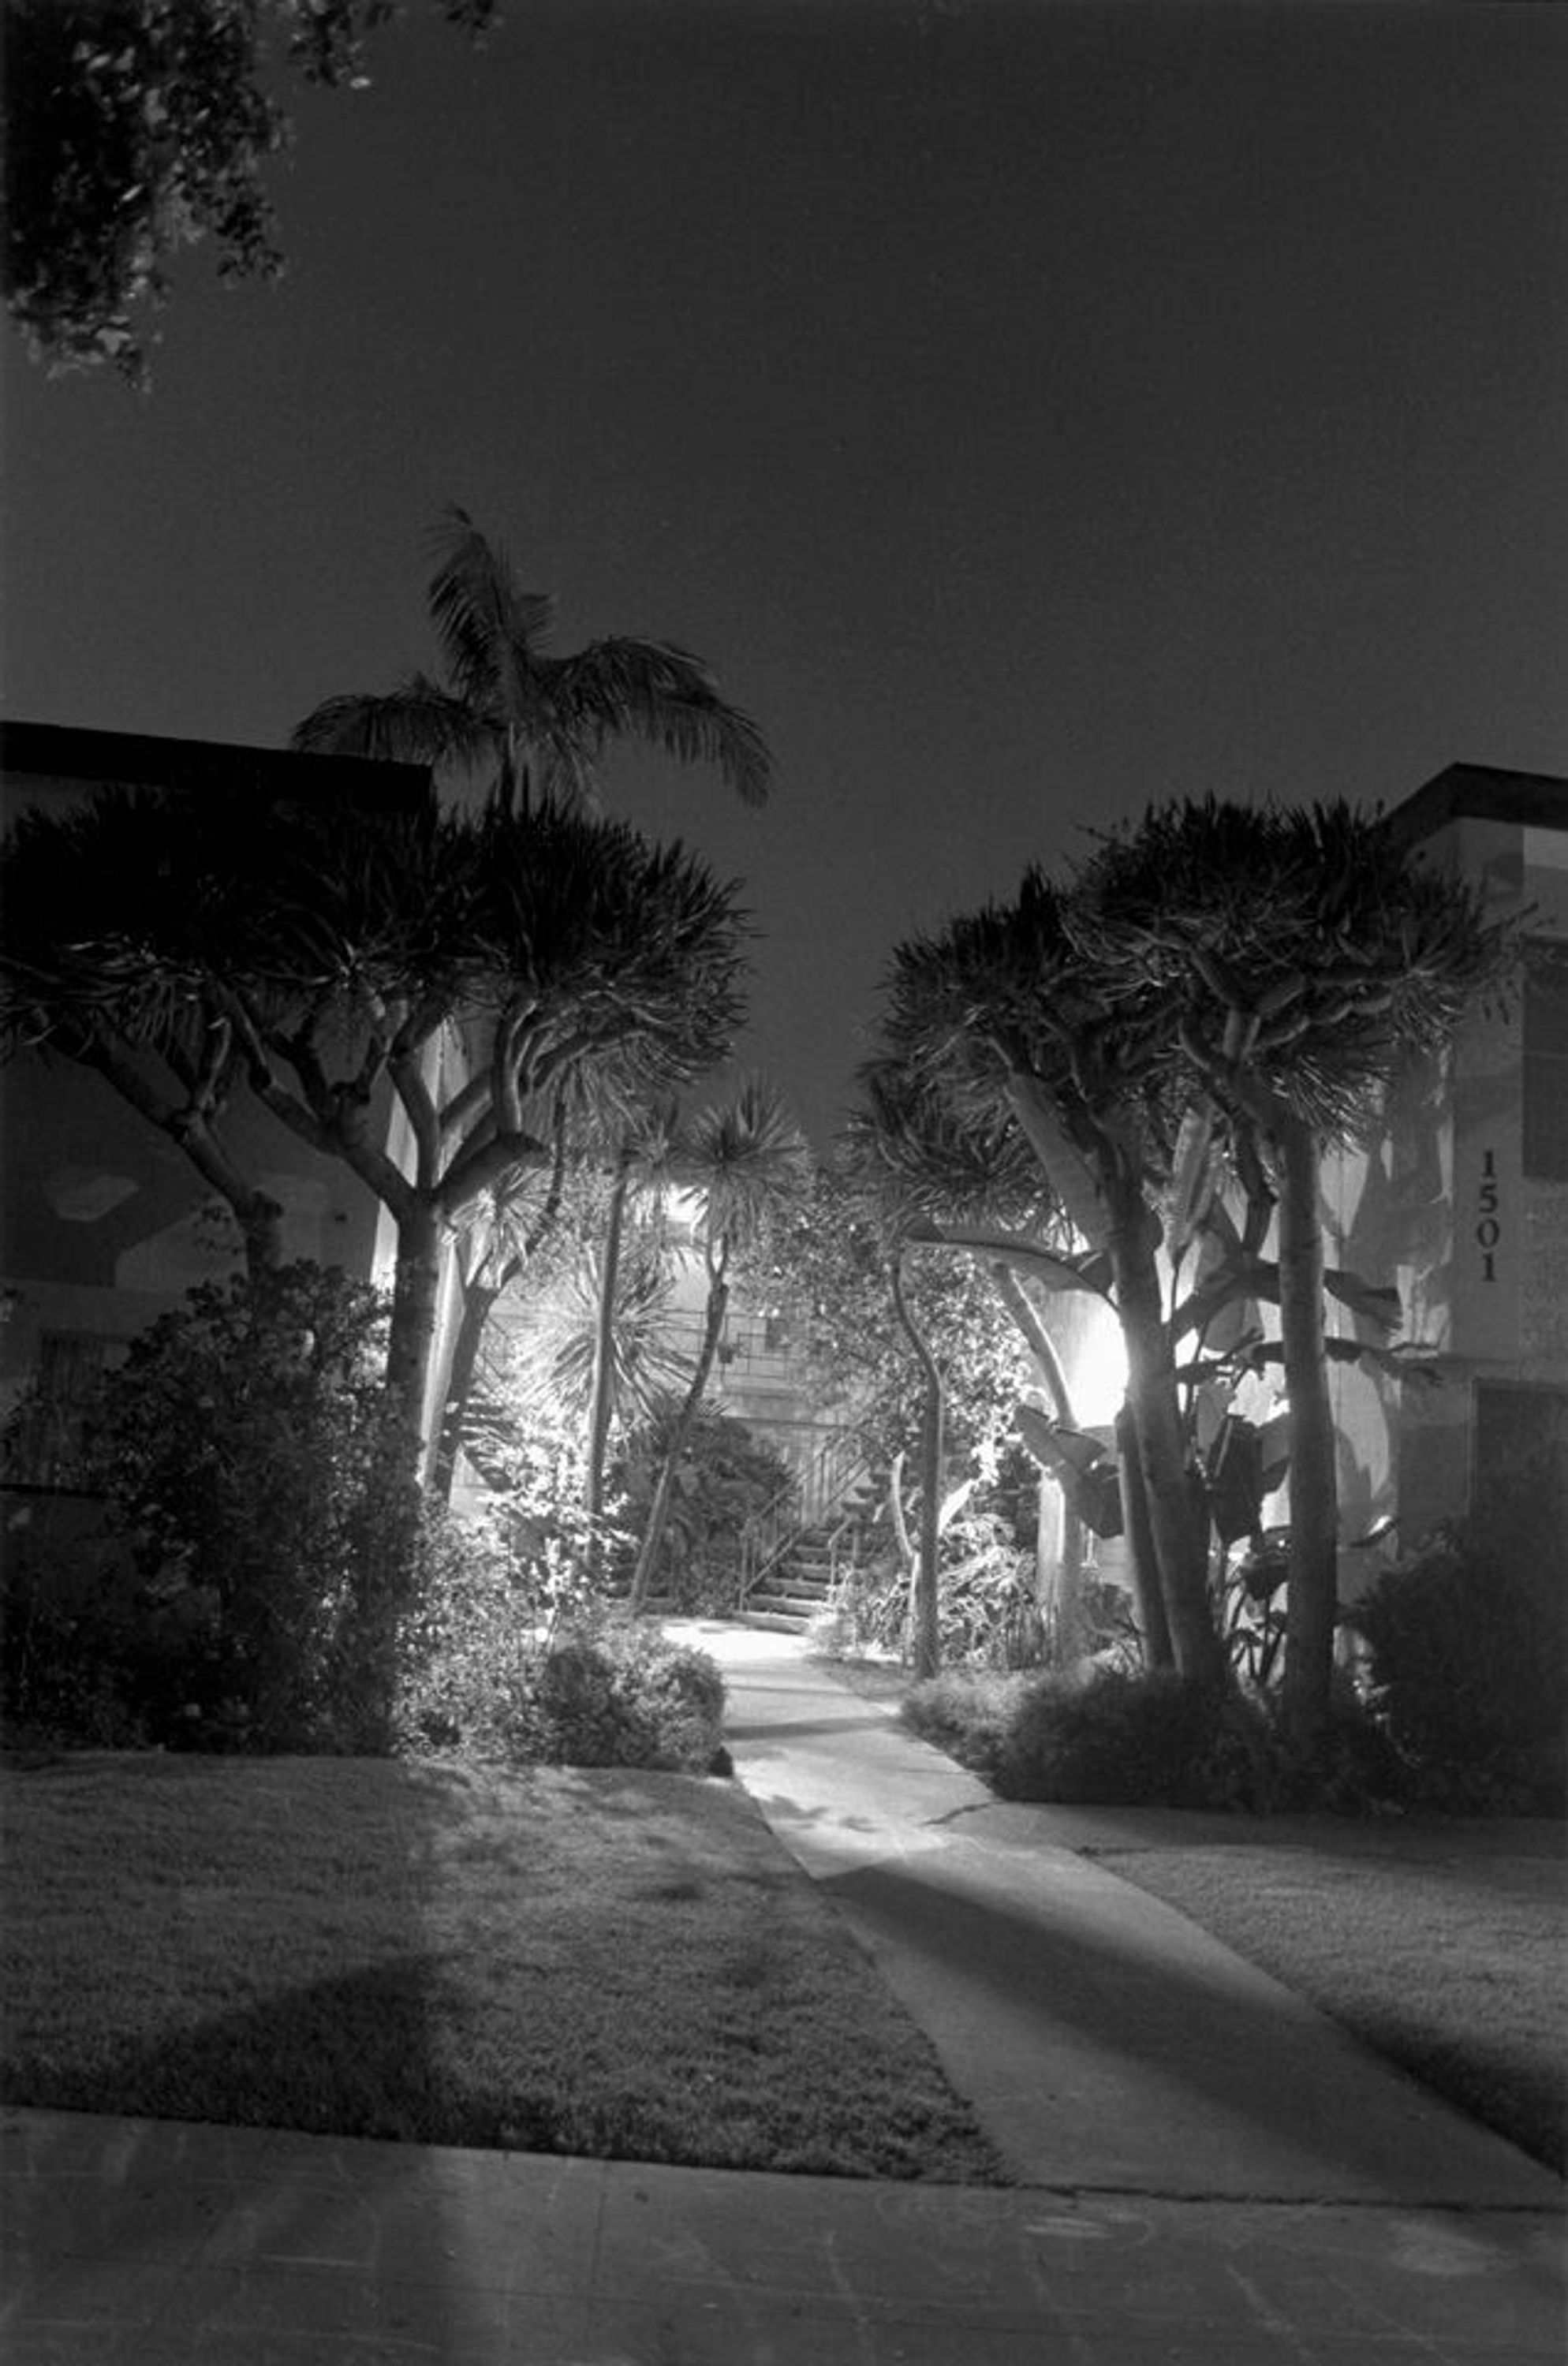 Nightwalk No. 23, 1995 by Henry Wessel, Hammer Consulting